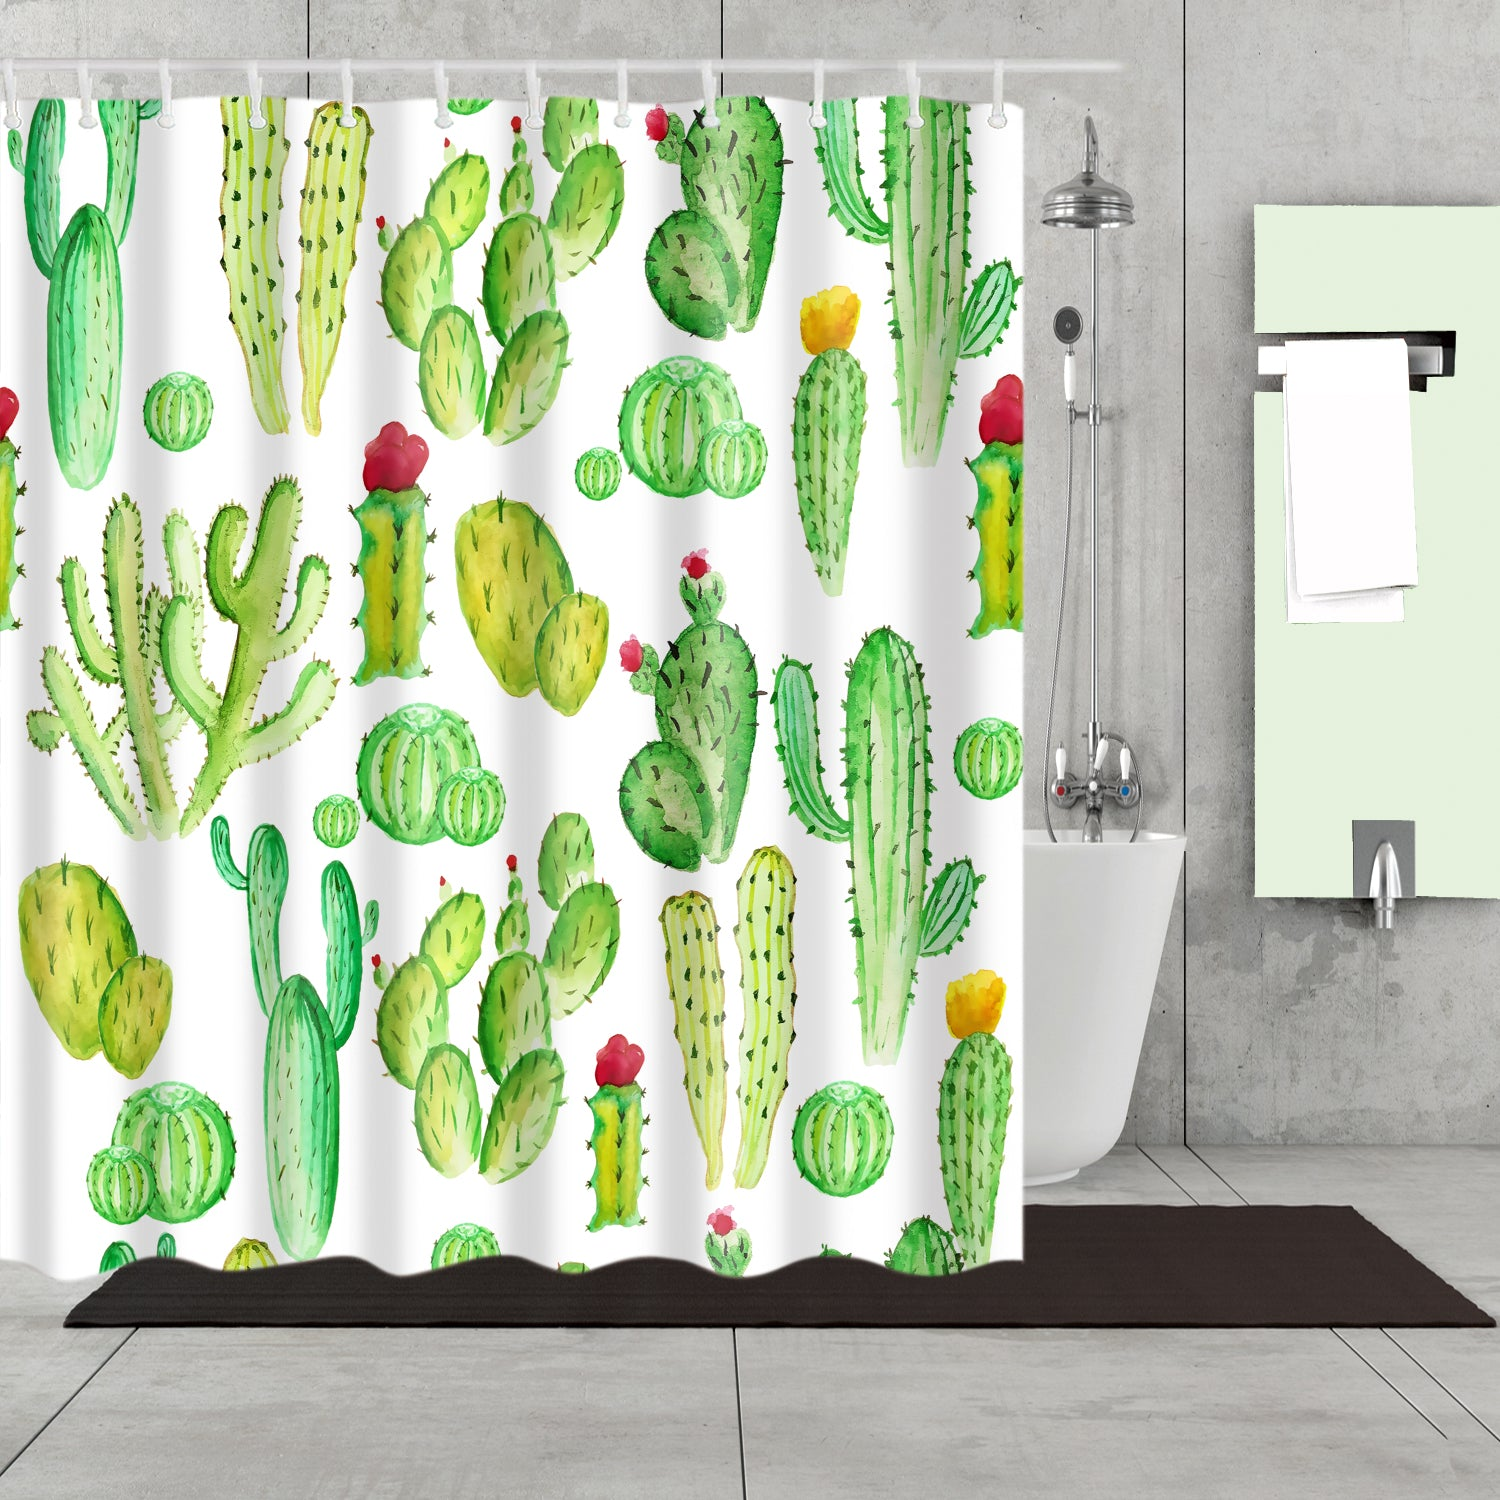 Eastern Prickly Pear Cactus Garden Shower Curtain